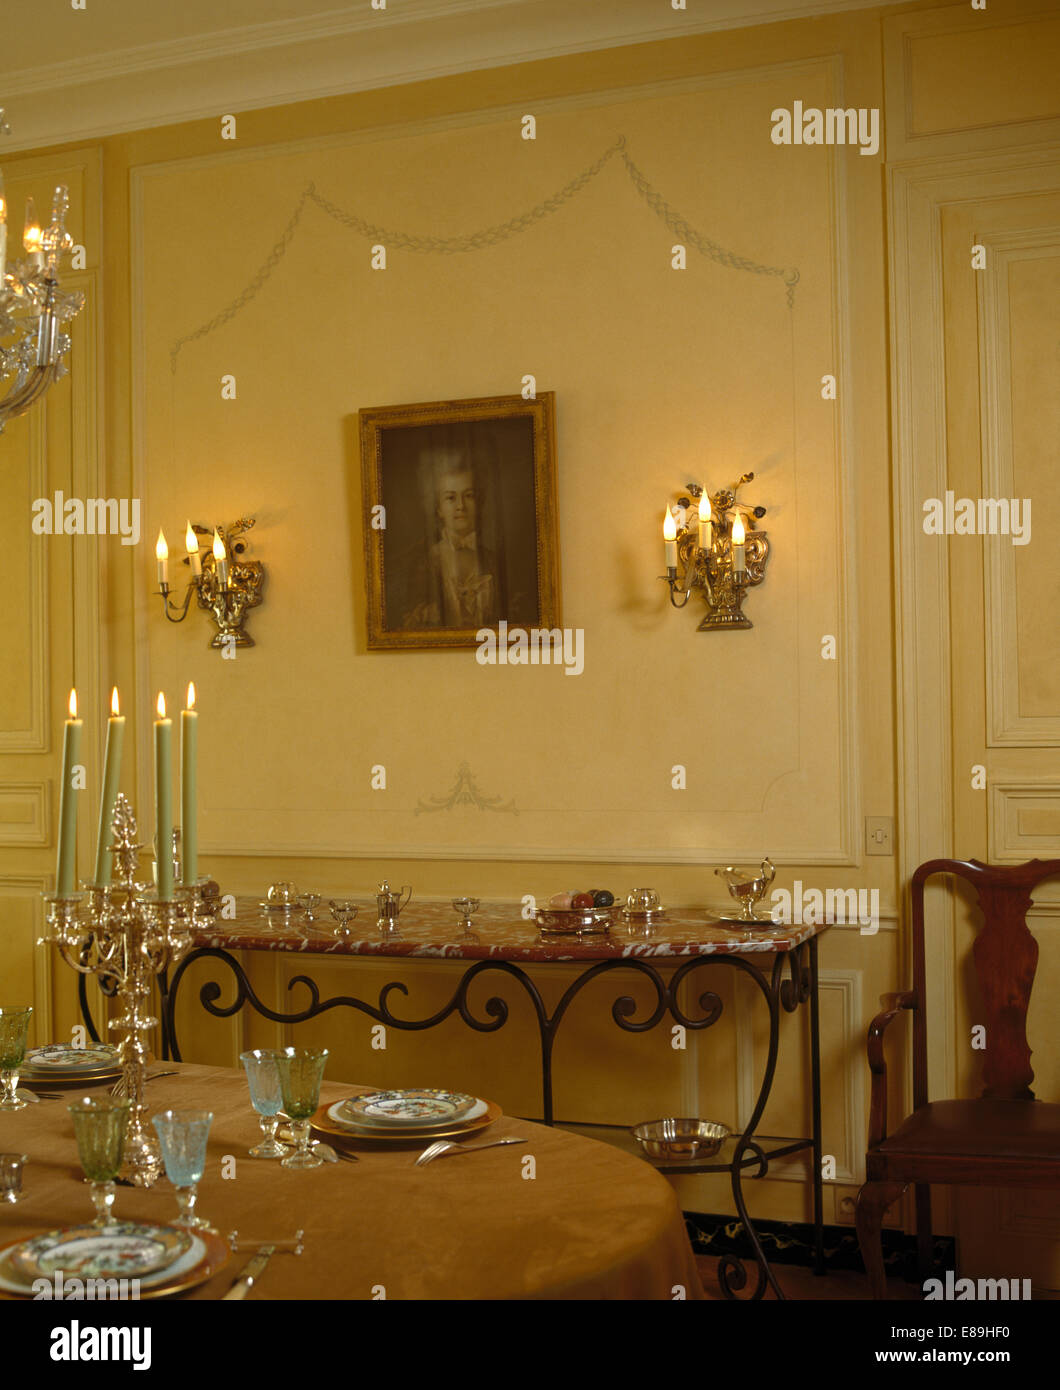 Lighted wall lights on either side of framed portrait in French ...